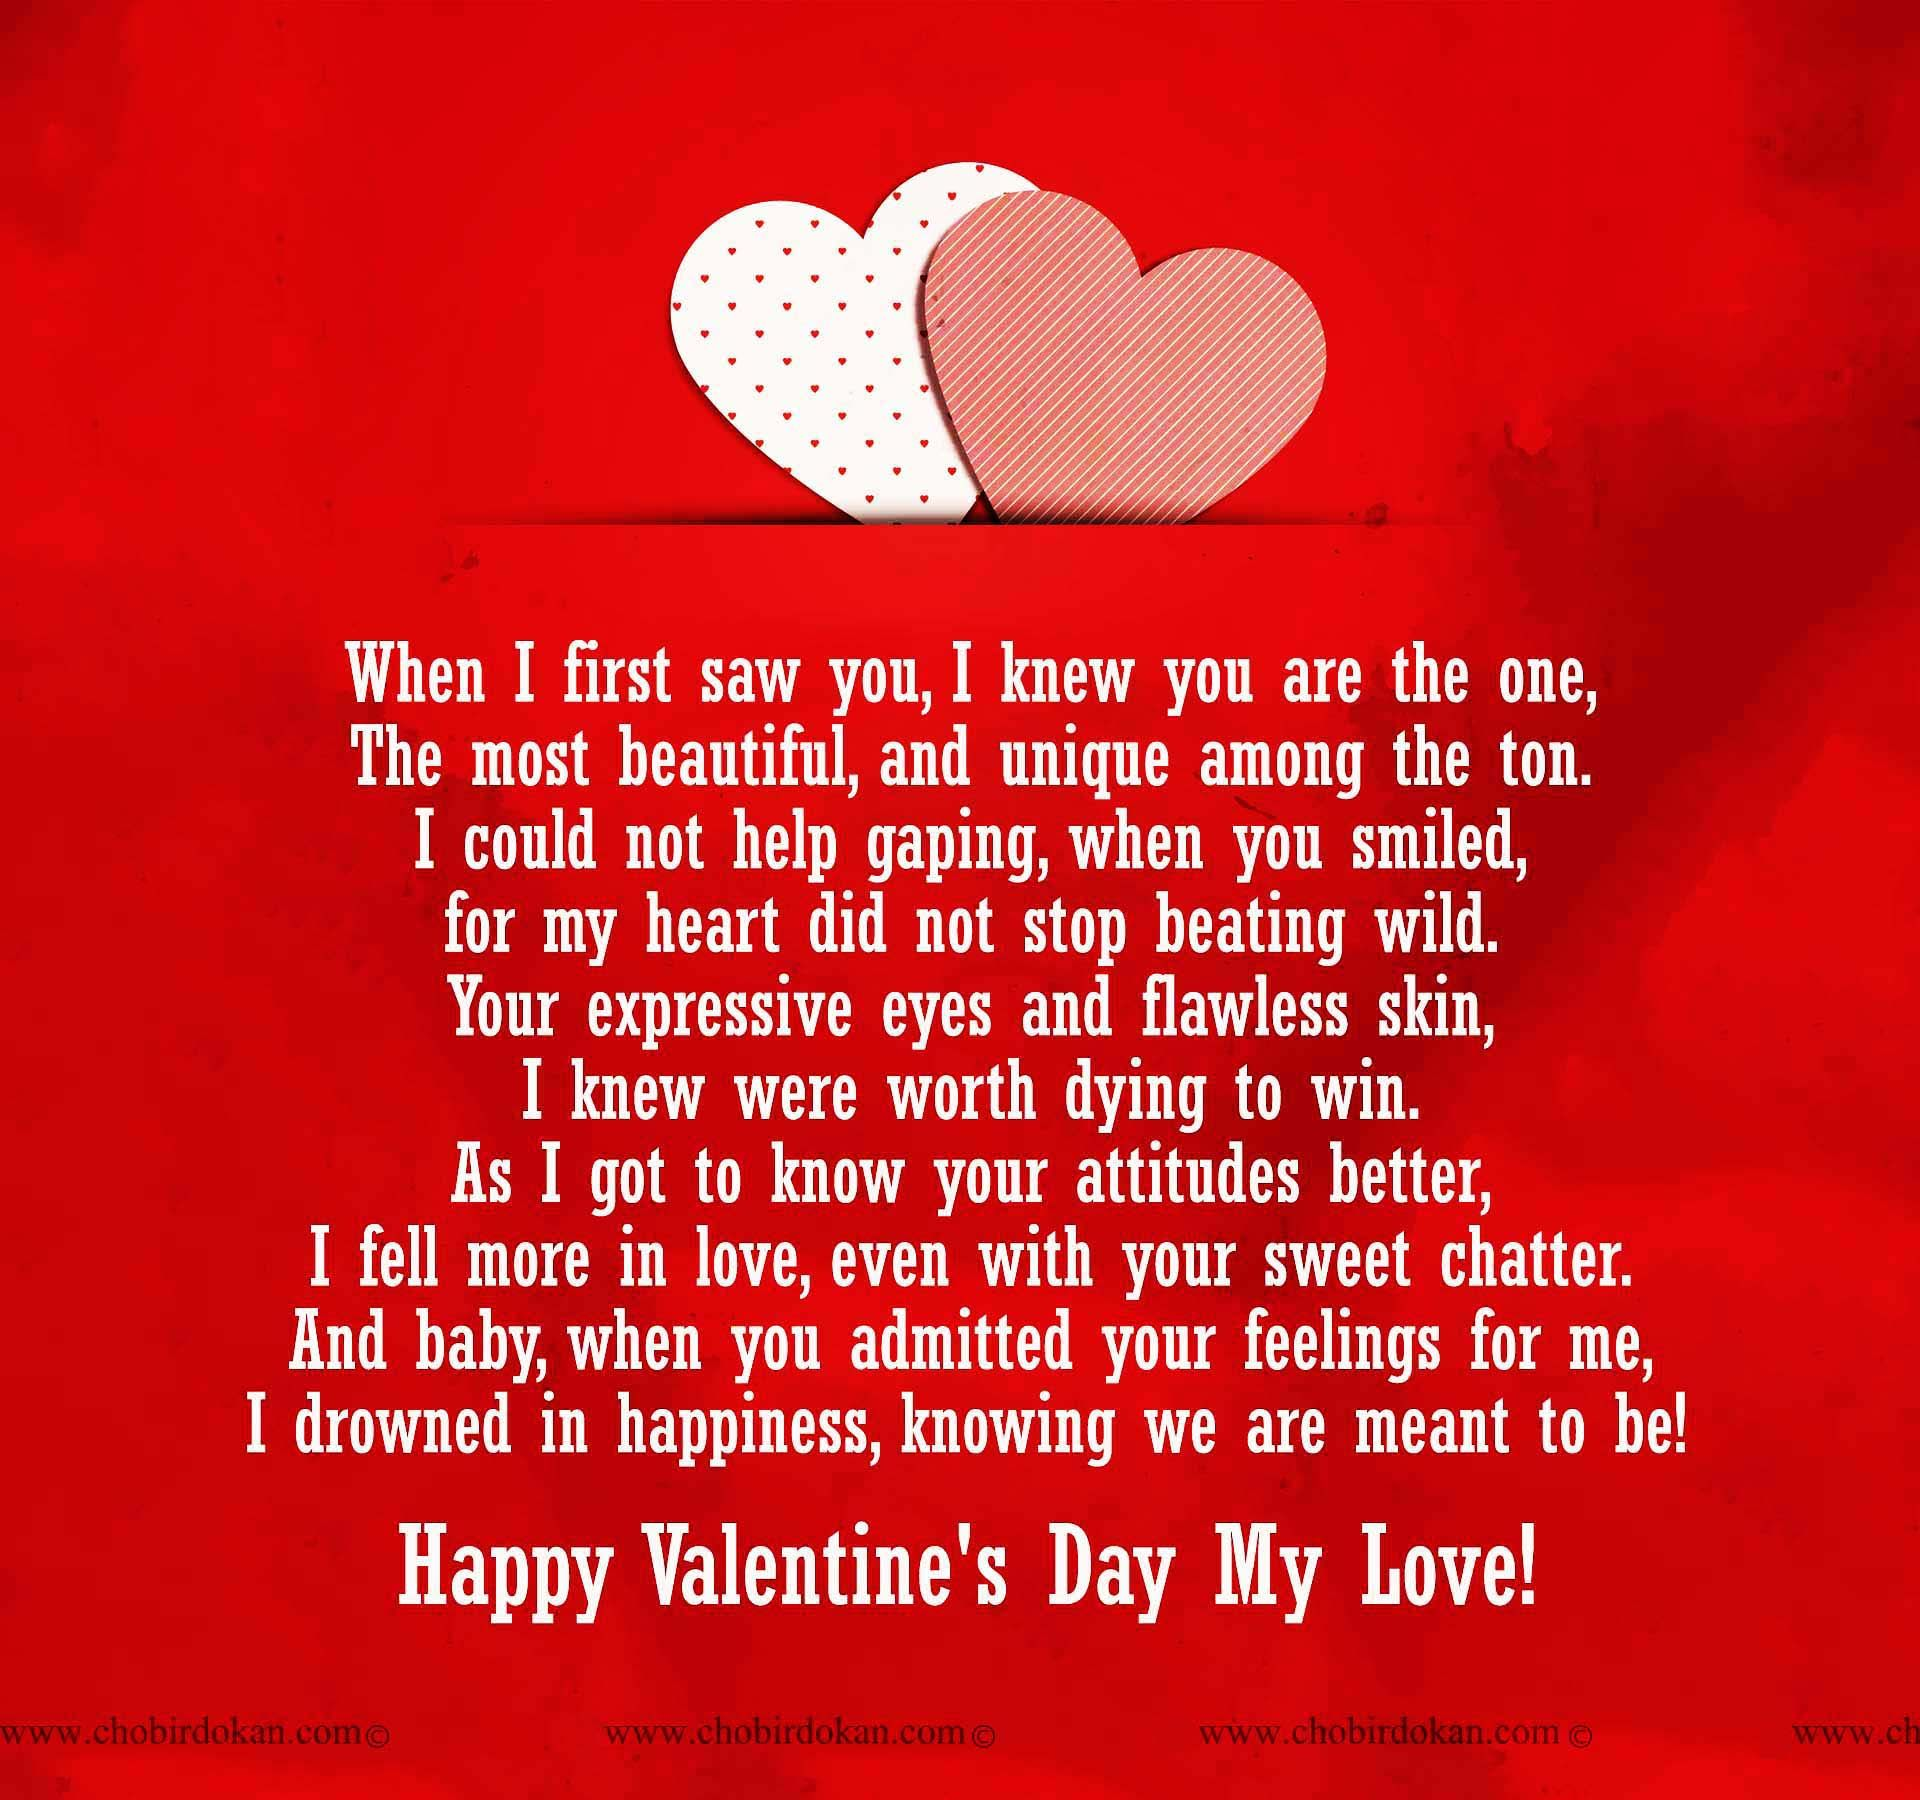 Valentines Day Quotes For Wife: Pin By Aeshini Gurusinghe On Awesome